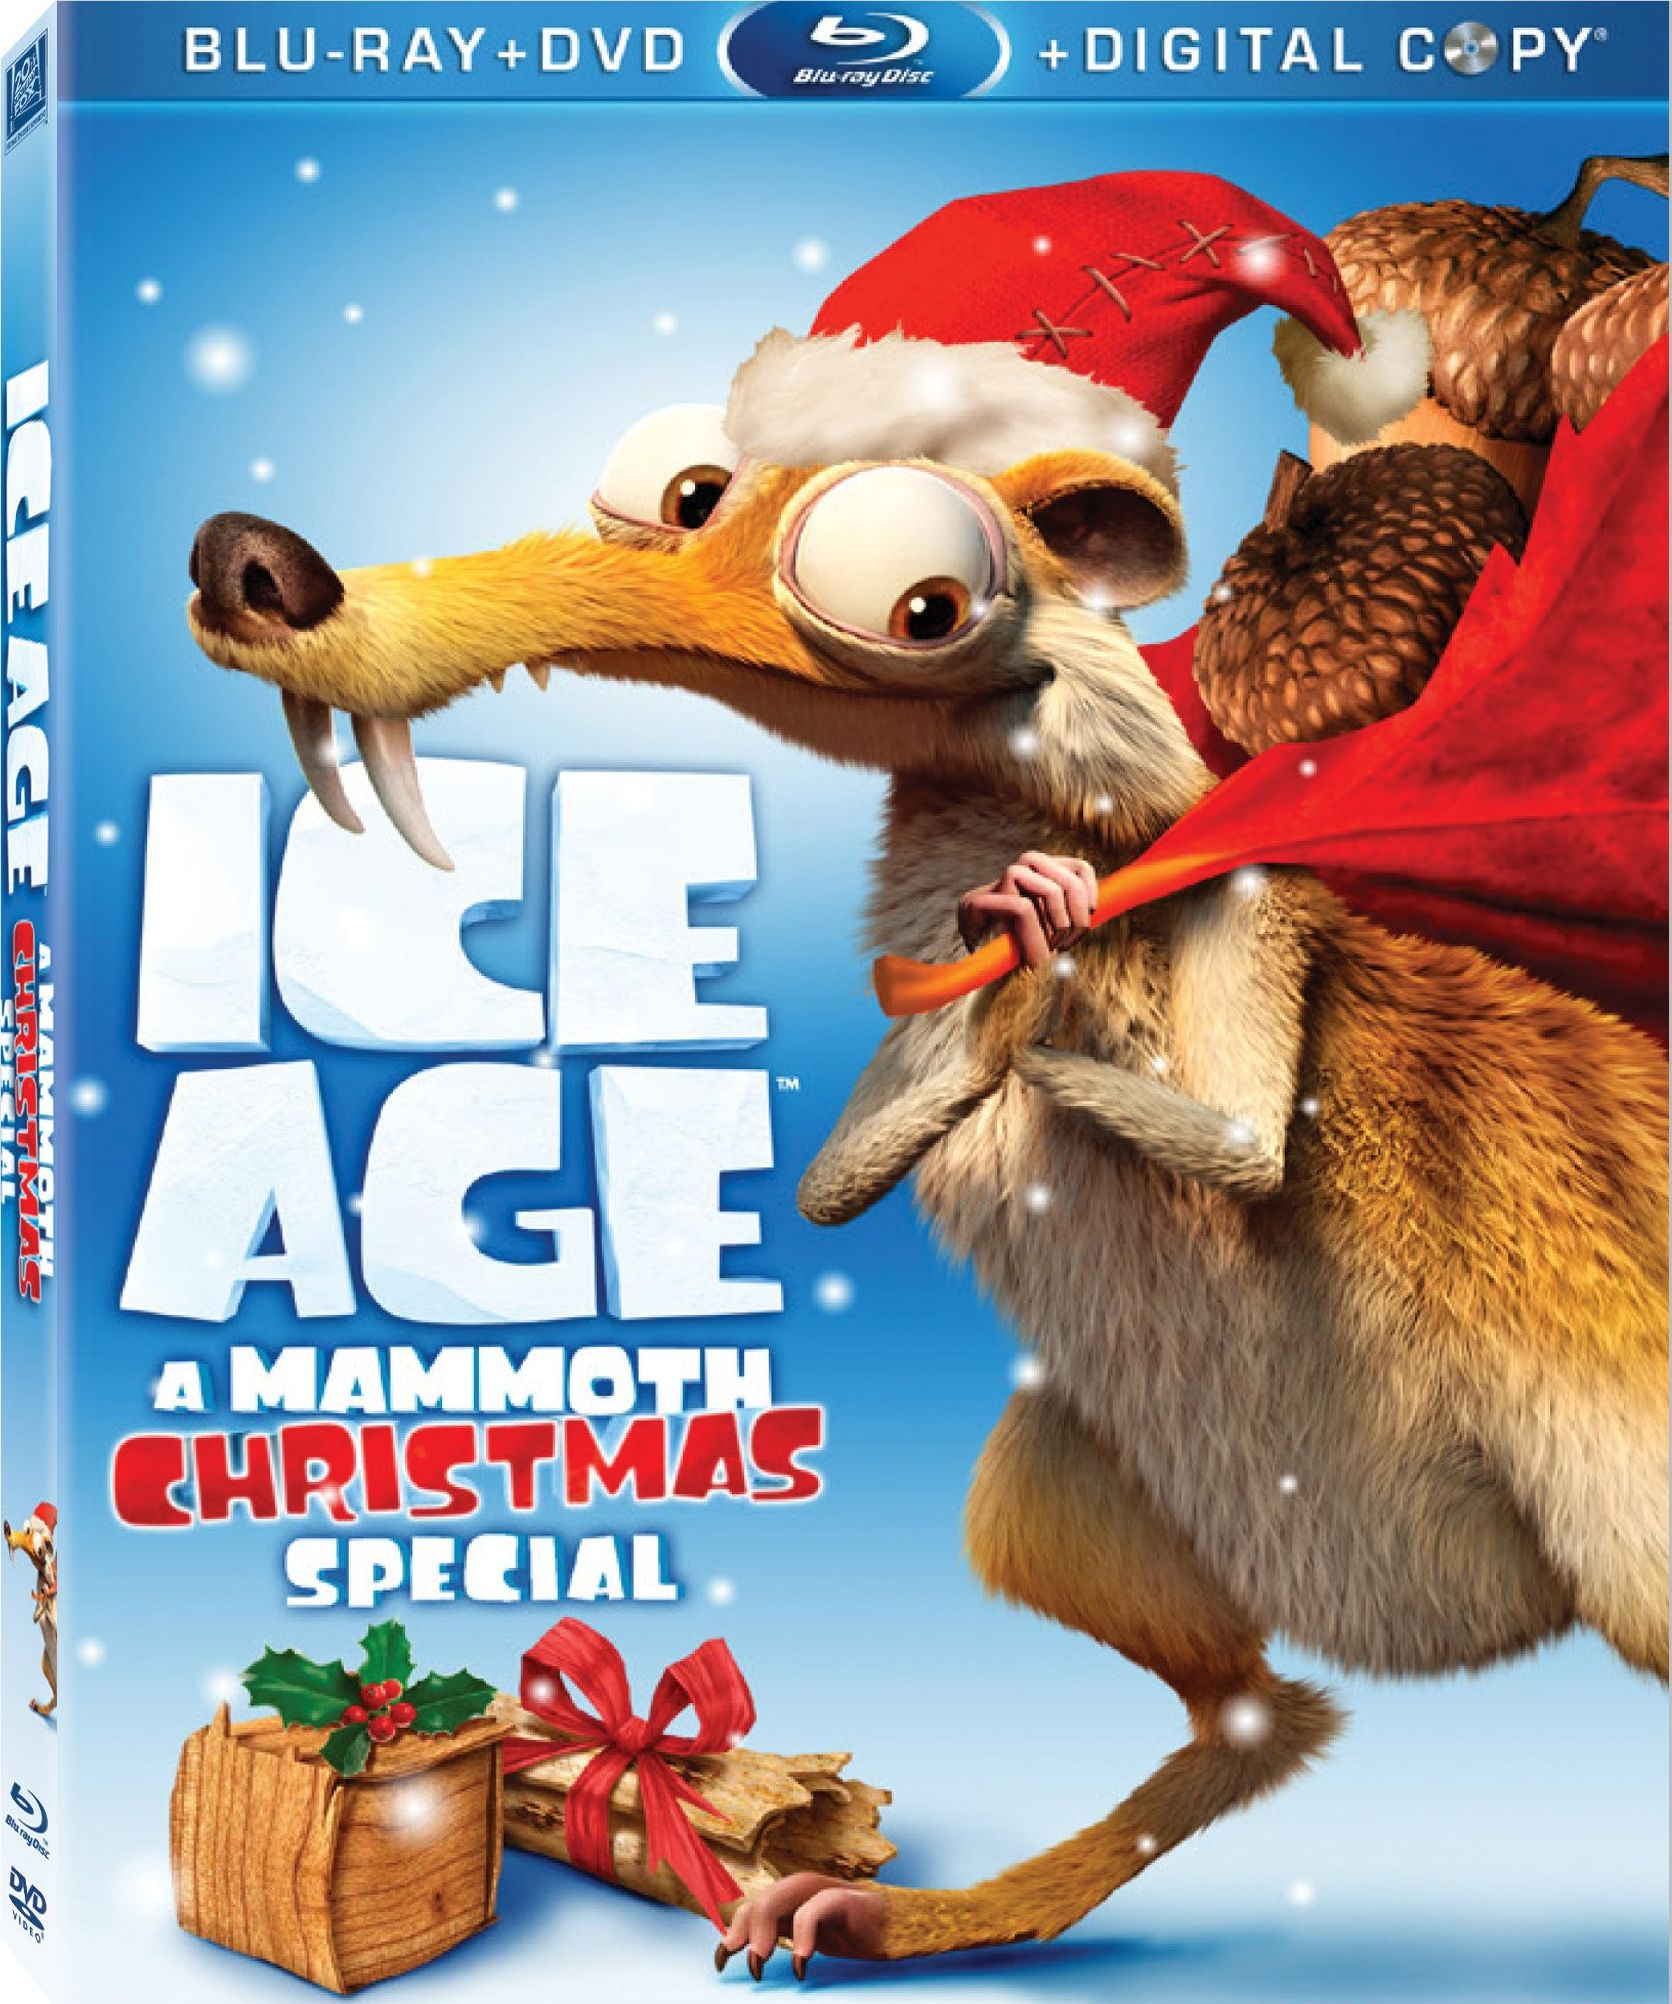 High Resolution Wallpaper | Ice Age: A Mammoth Christmas 1672x2004 px